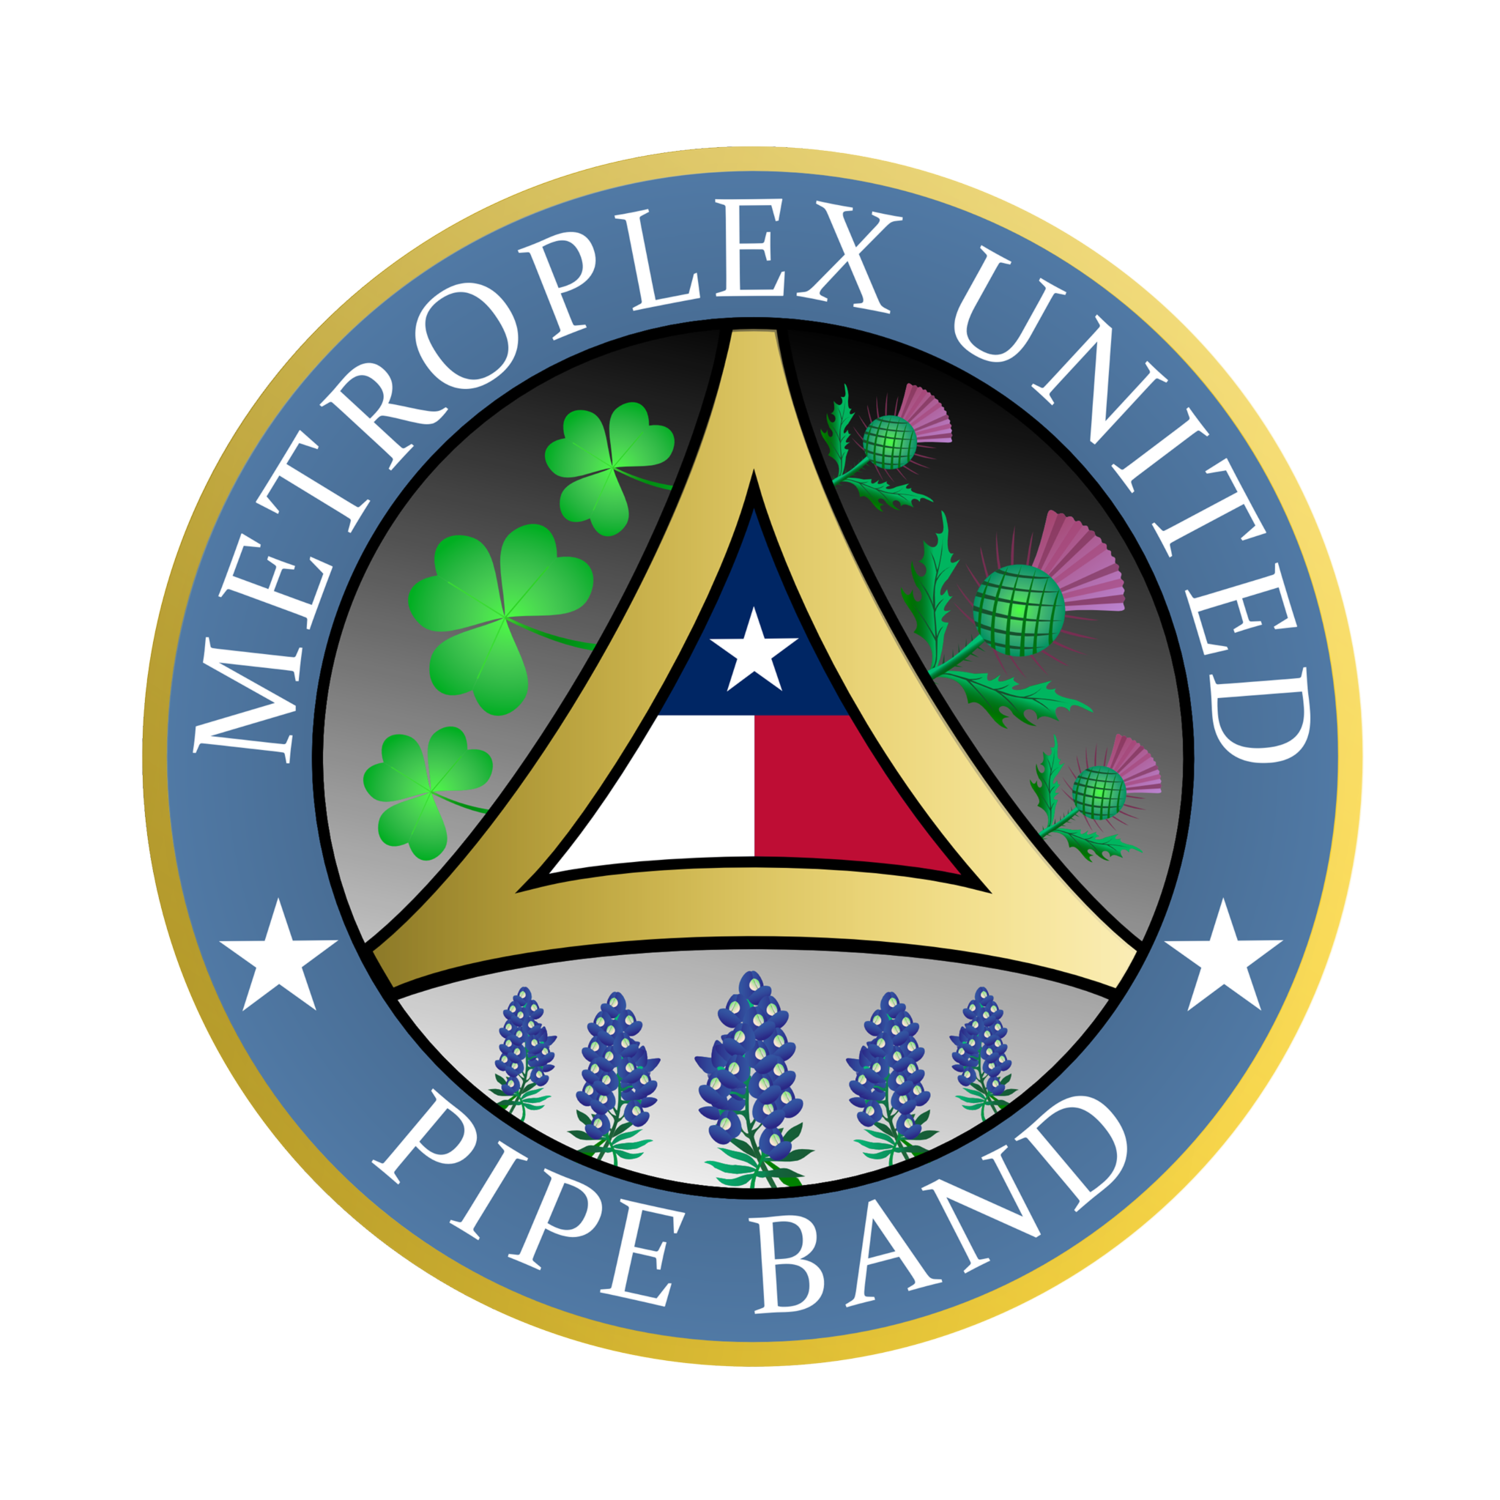 Metroplex United Pipe Band